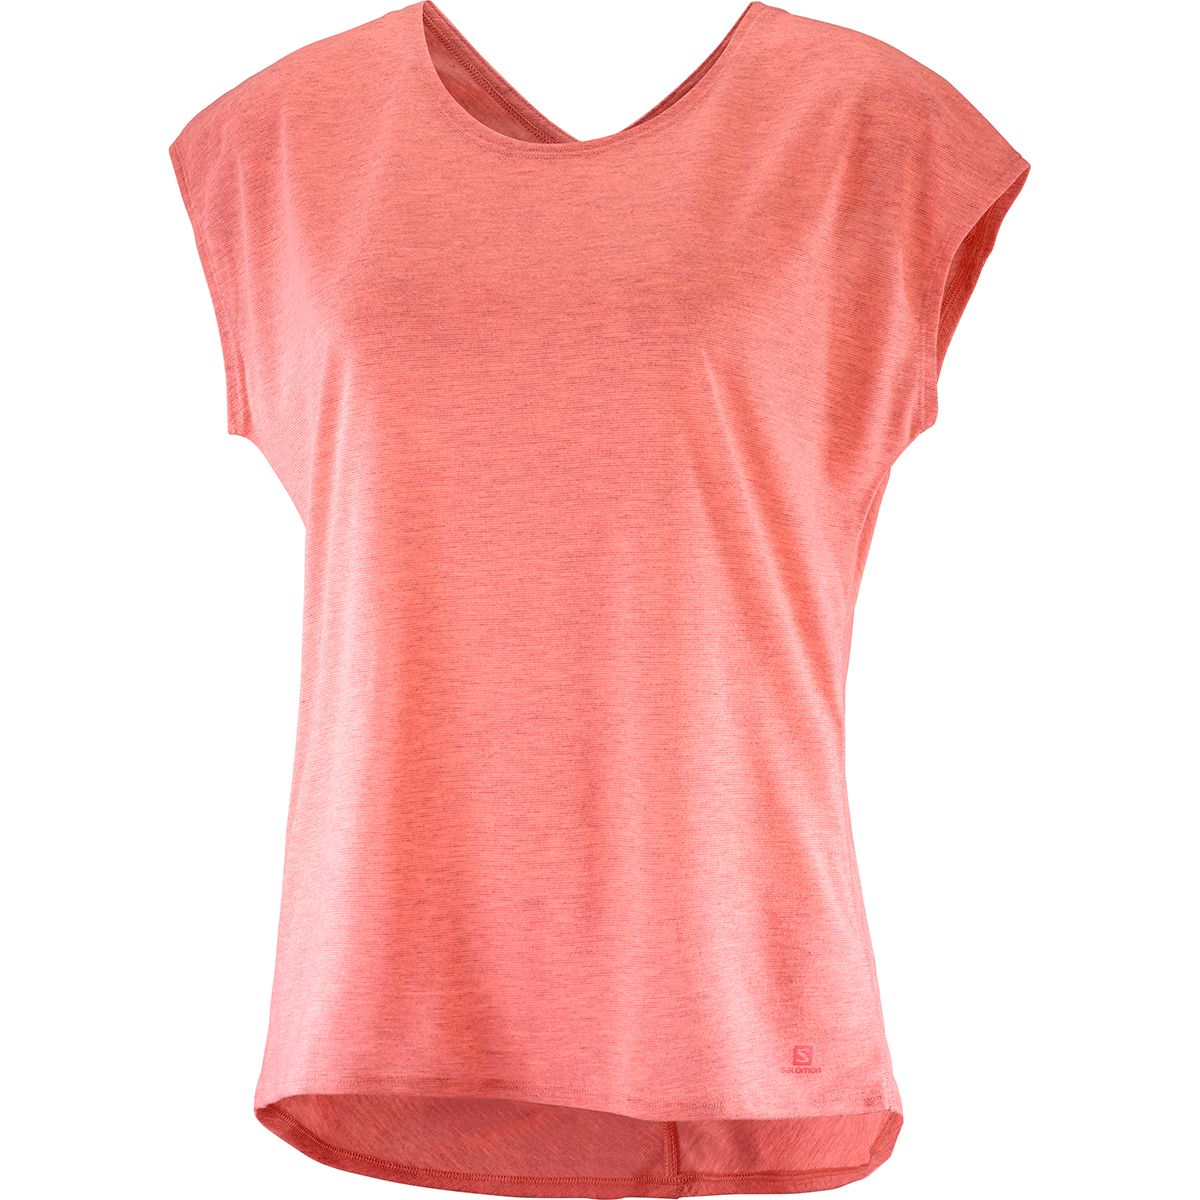 Salomon Damen Comet T-Shirt (Größe M, Pink) | T-Shirts Funktion > Damen